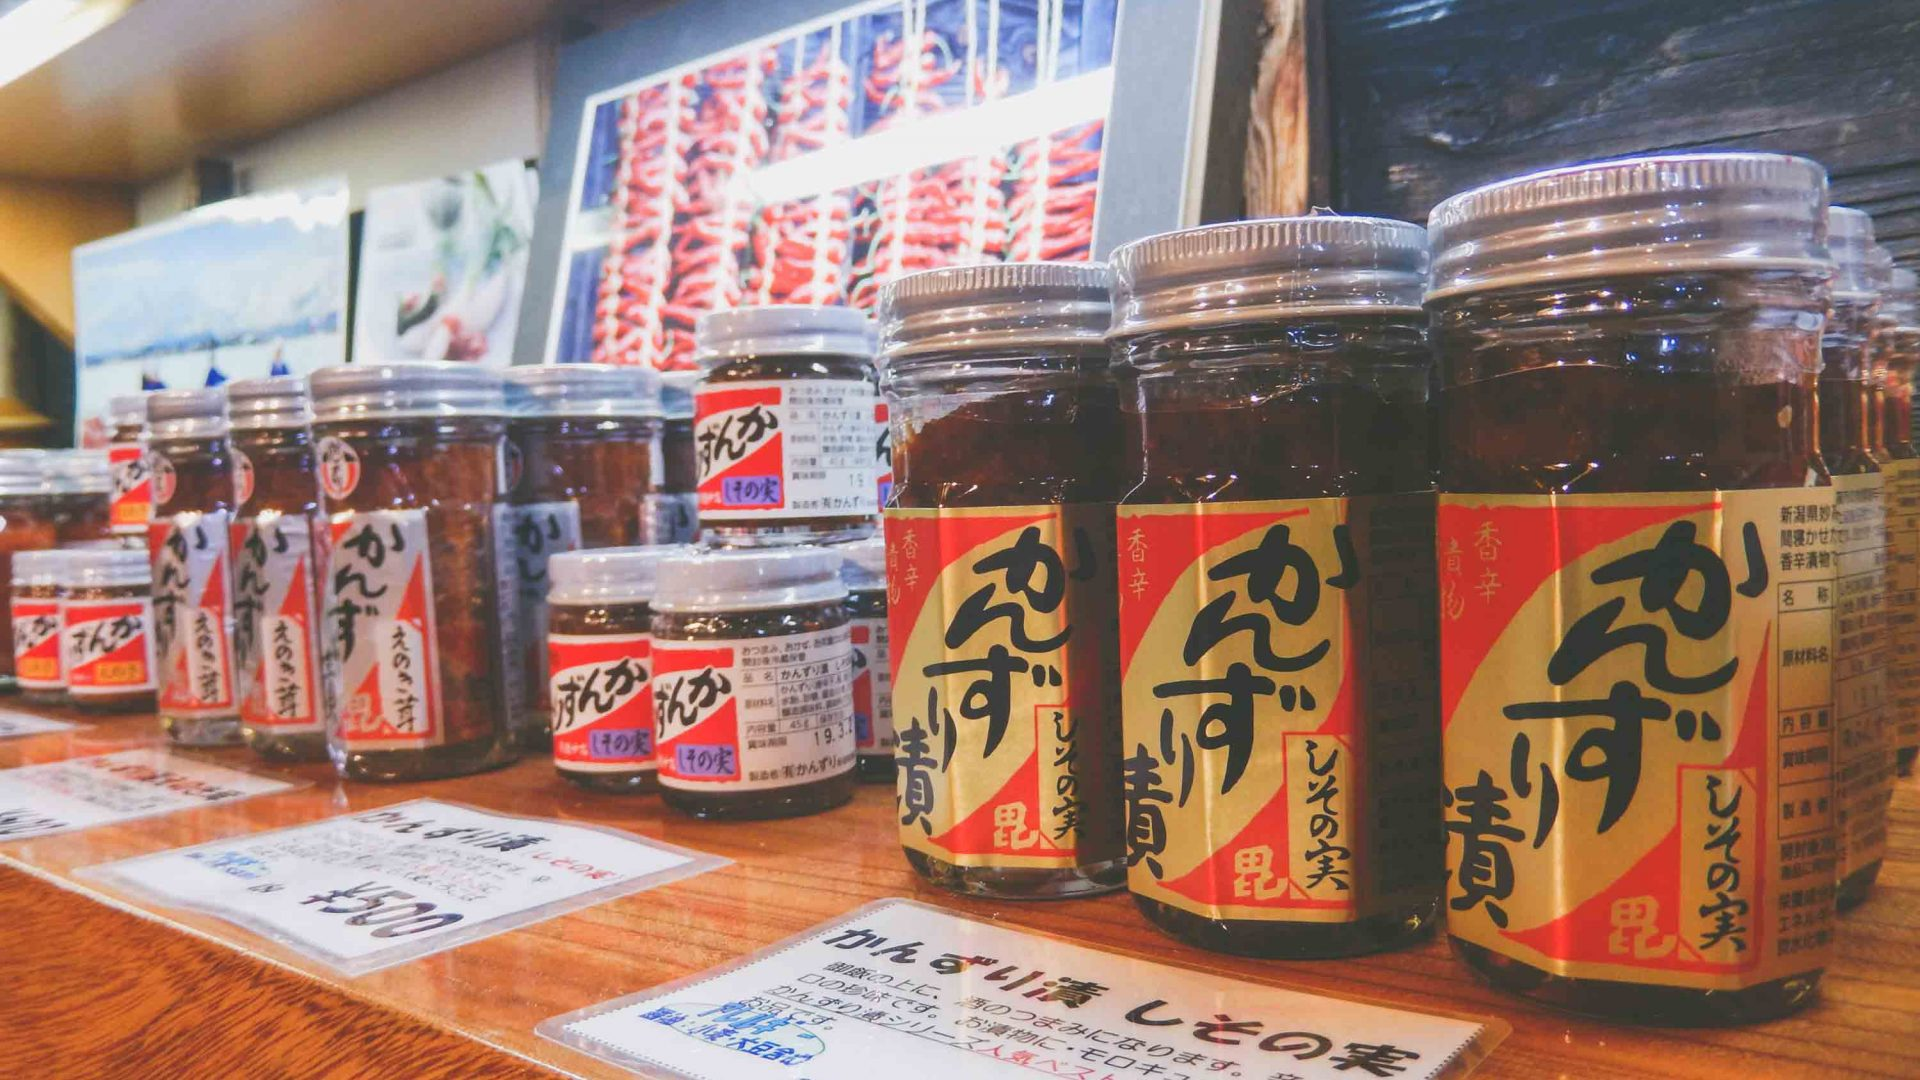 Kanzuri chilli paste from Niigata, Japan on sale at the Kanzuri factory.